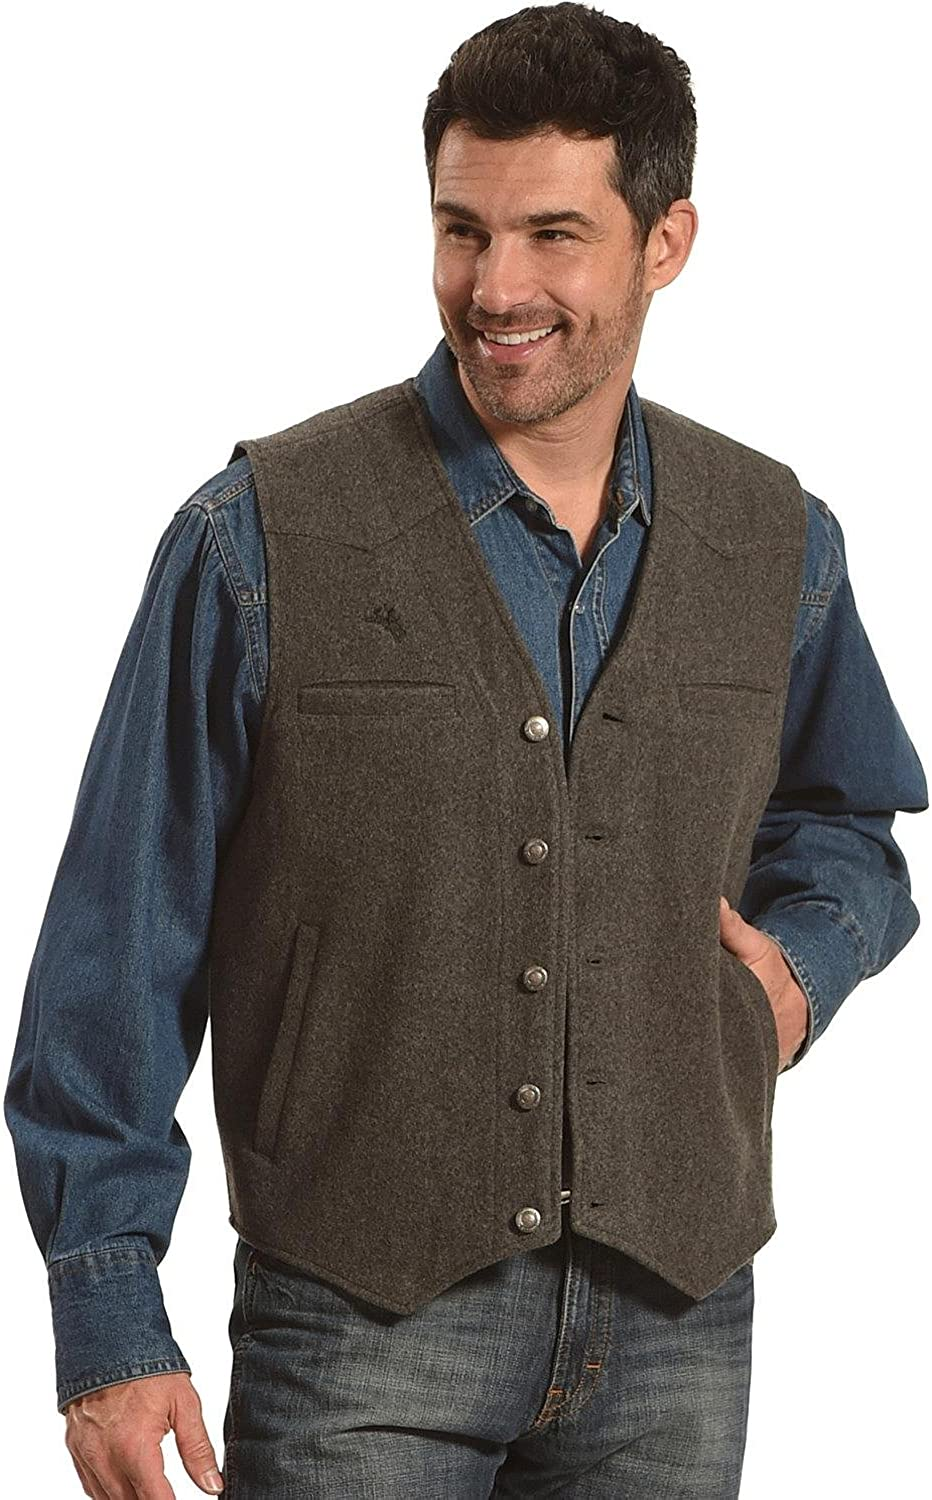 Men's Steampunk Clothing, Costumes, Fashion Wyoming Traders Mens Wool Vest - Vb-Black $62.49 AT vintagedancer.com